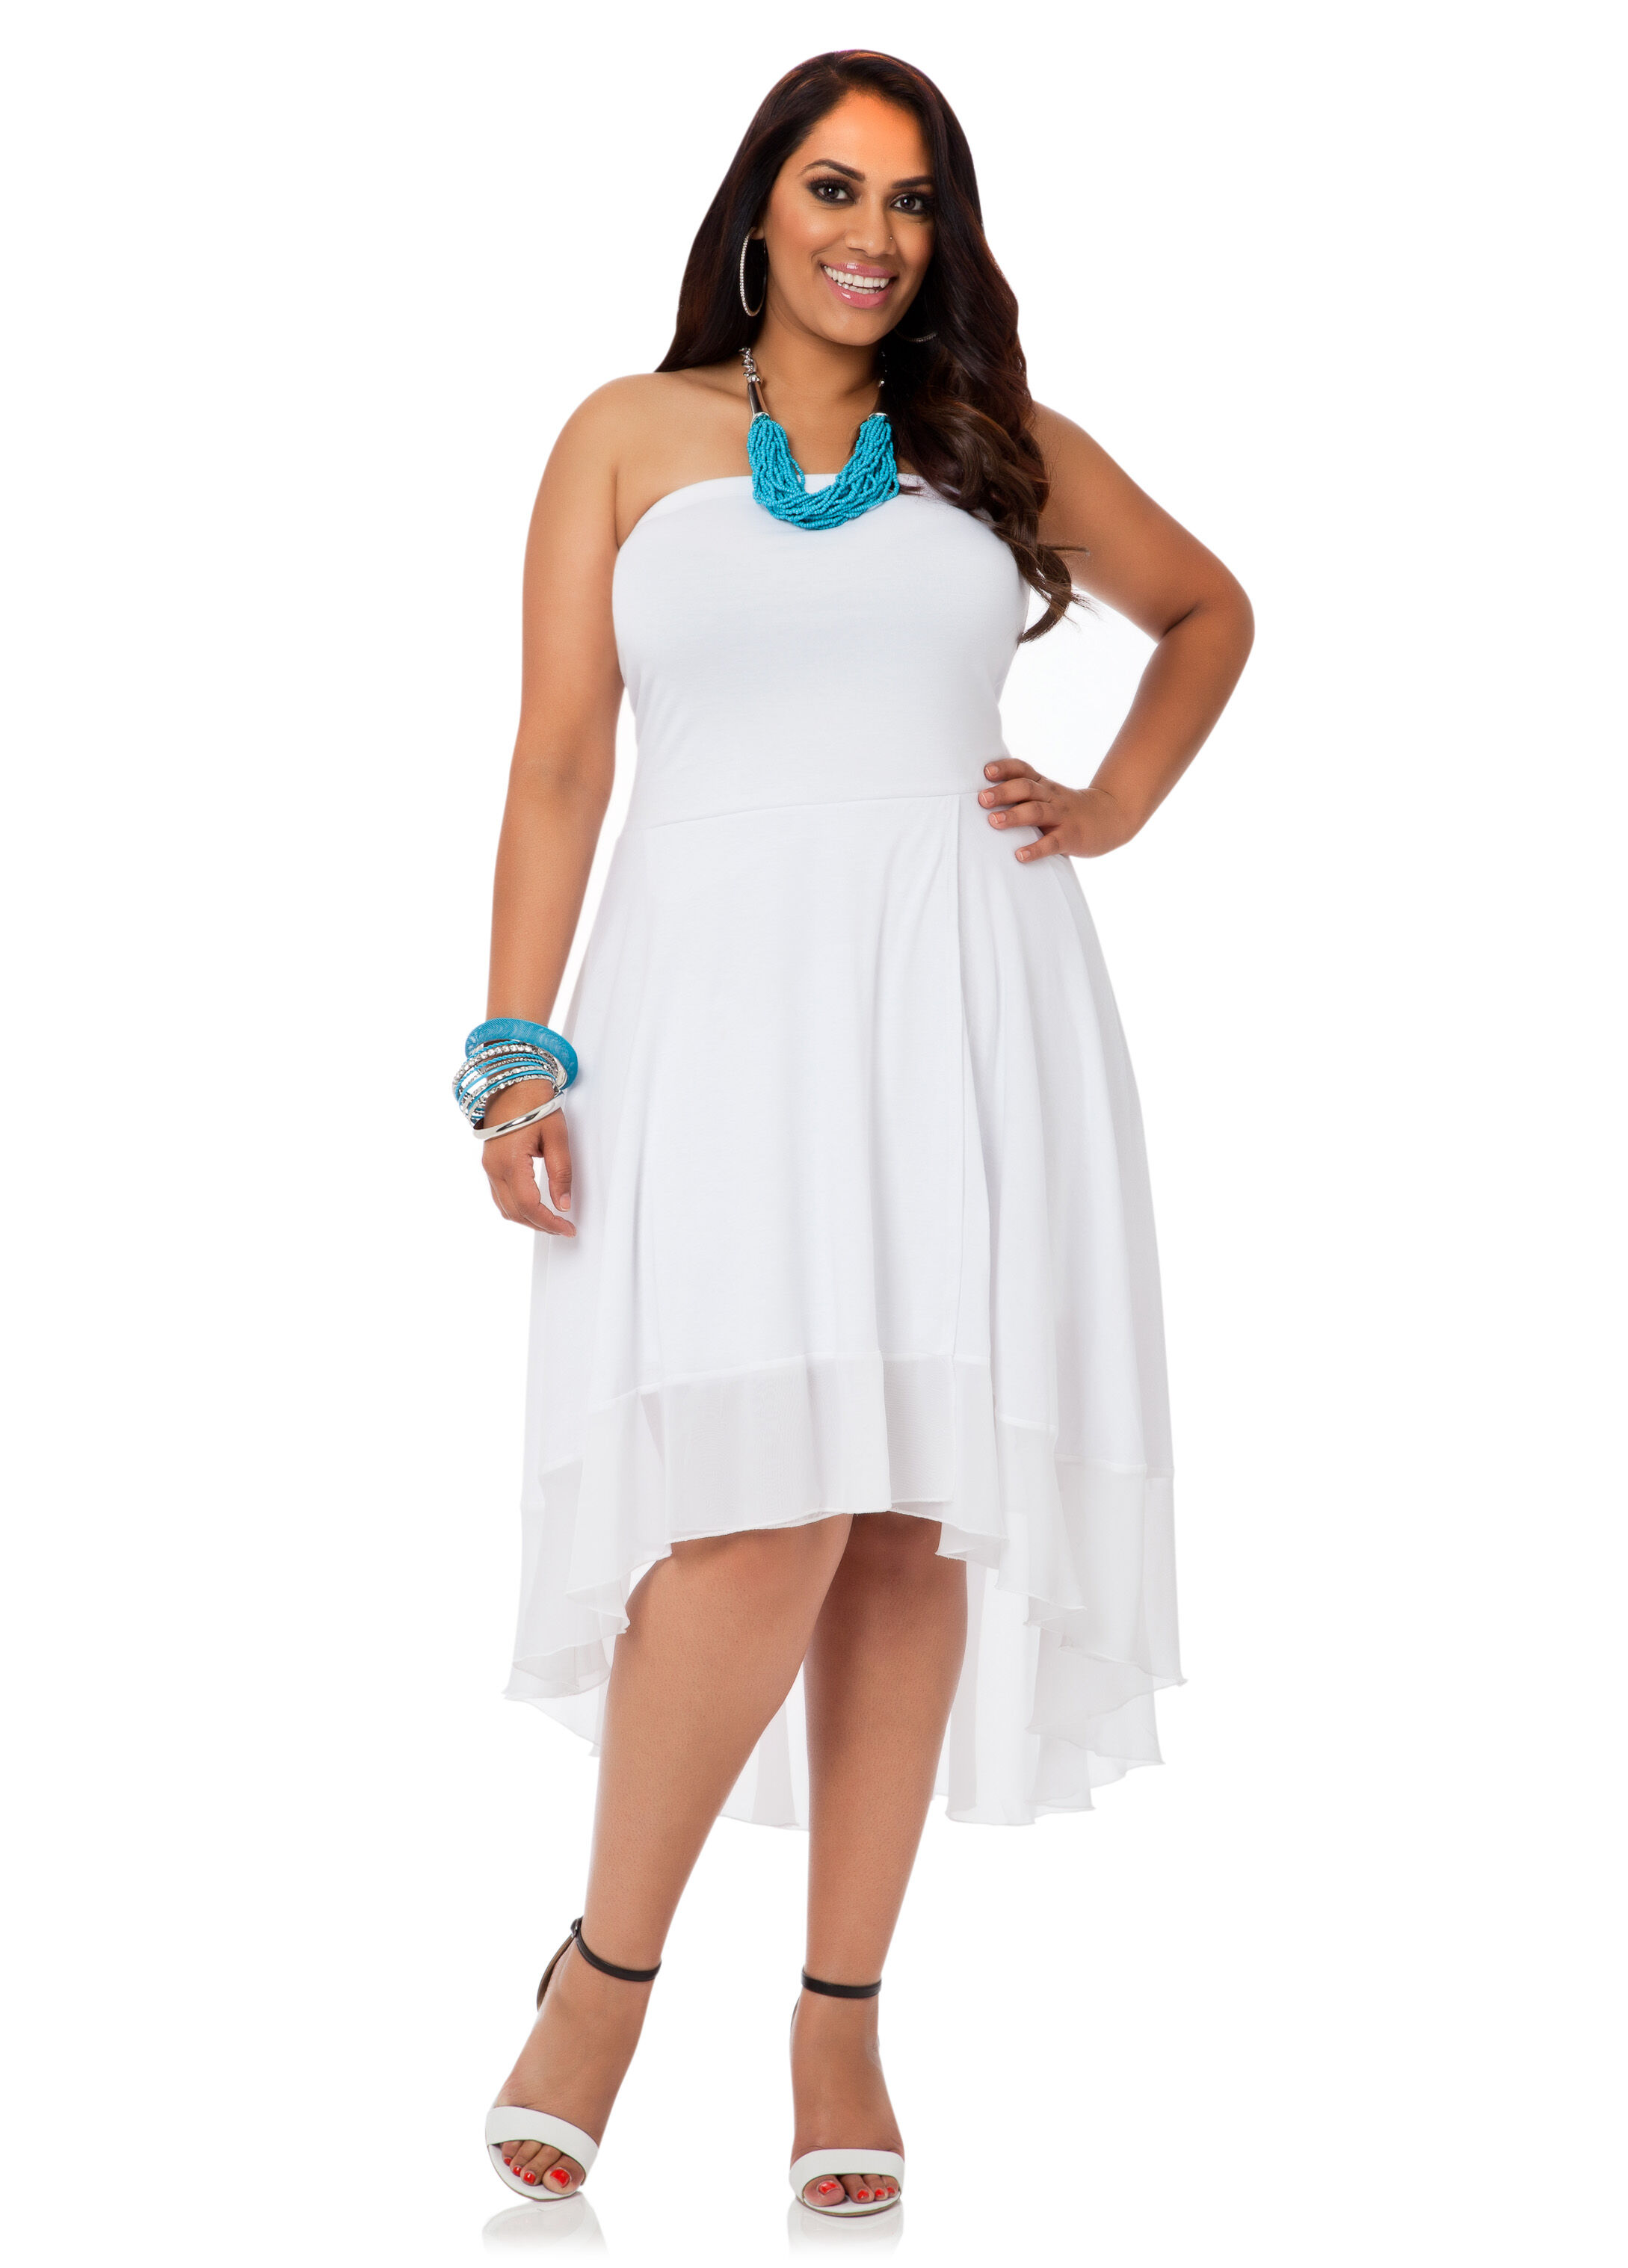 White Strapless Tube Dress HwoCHRj5